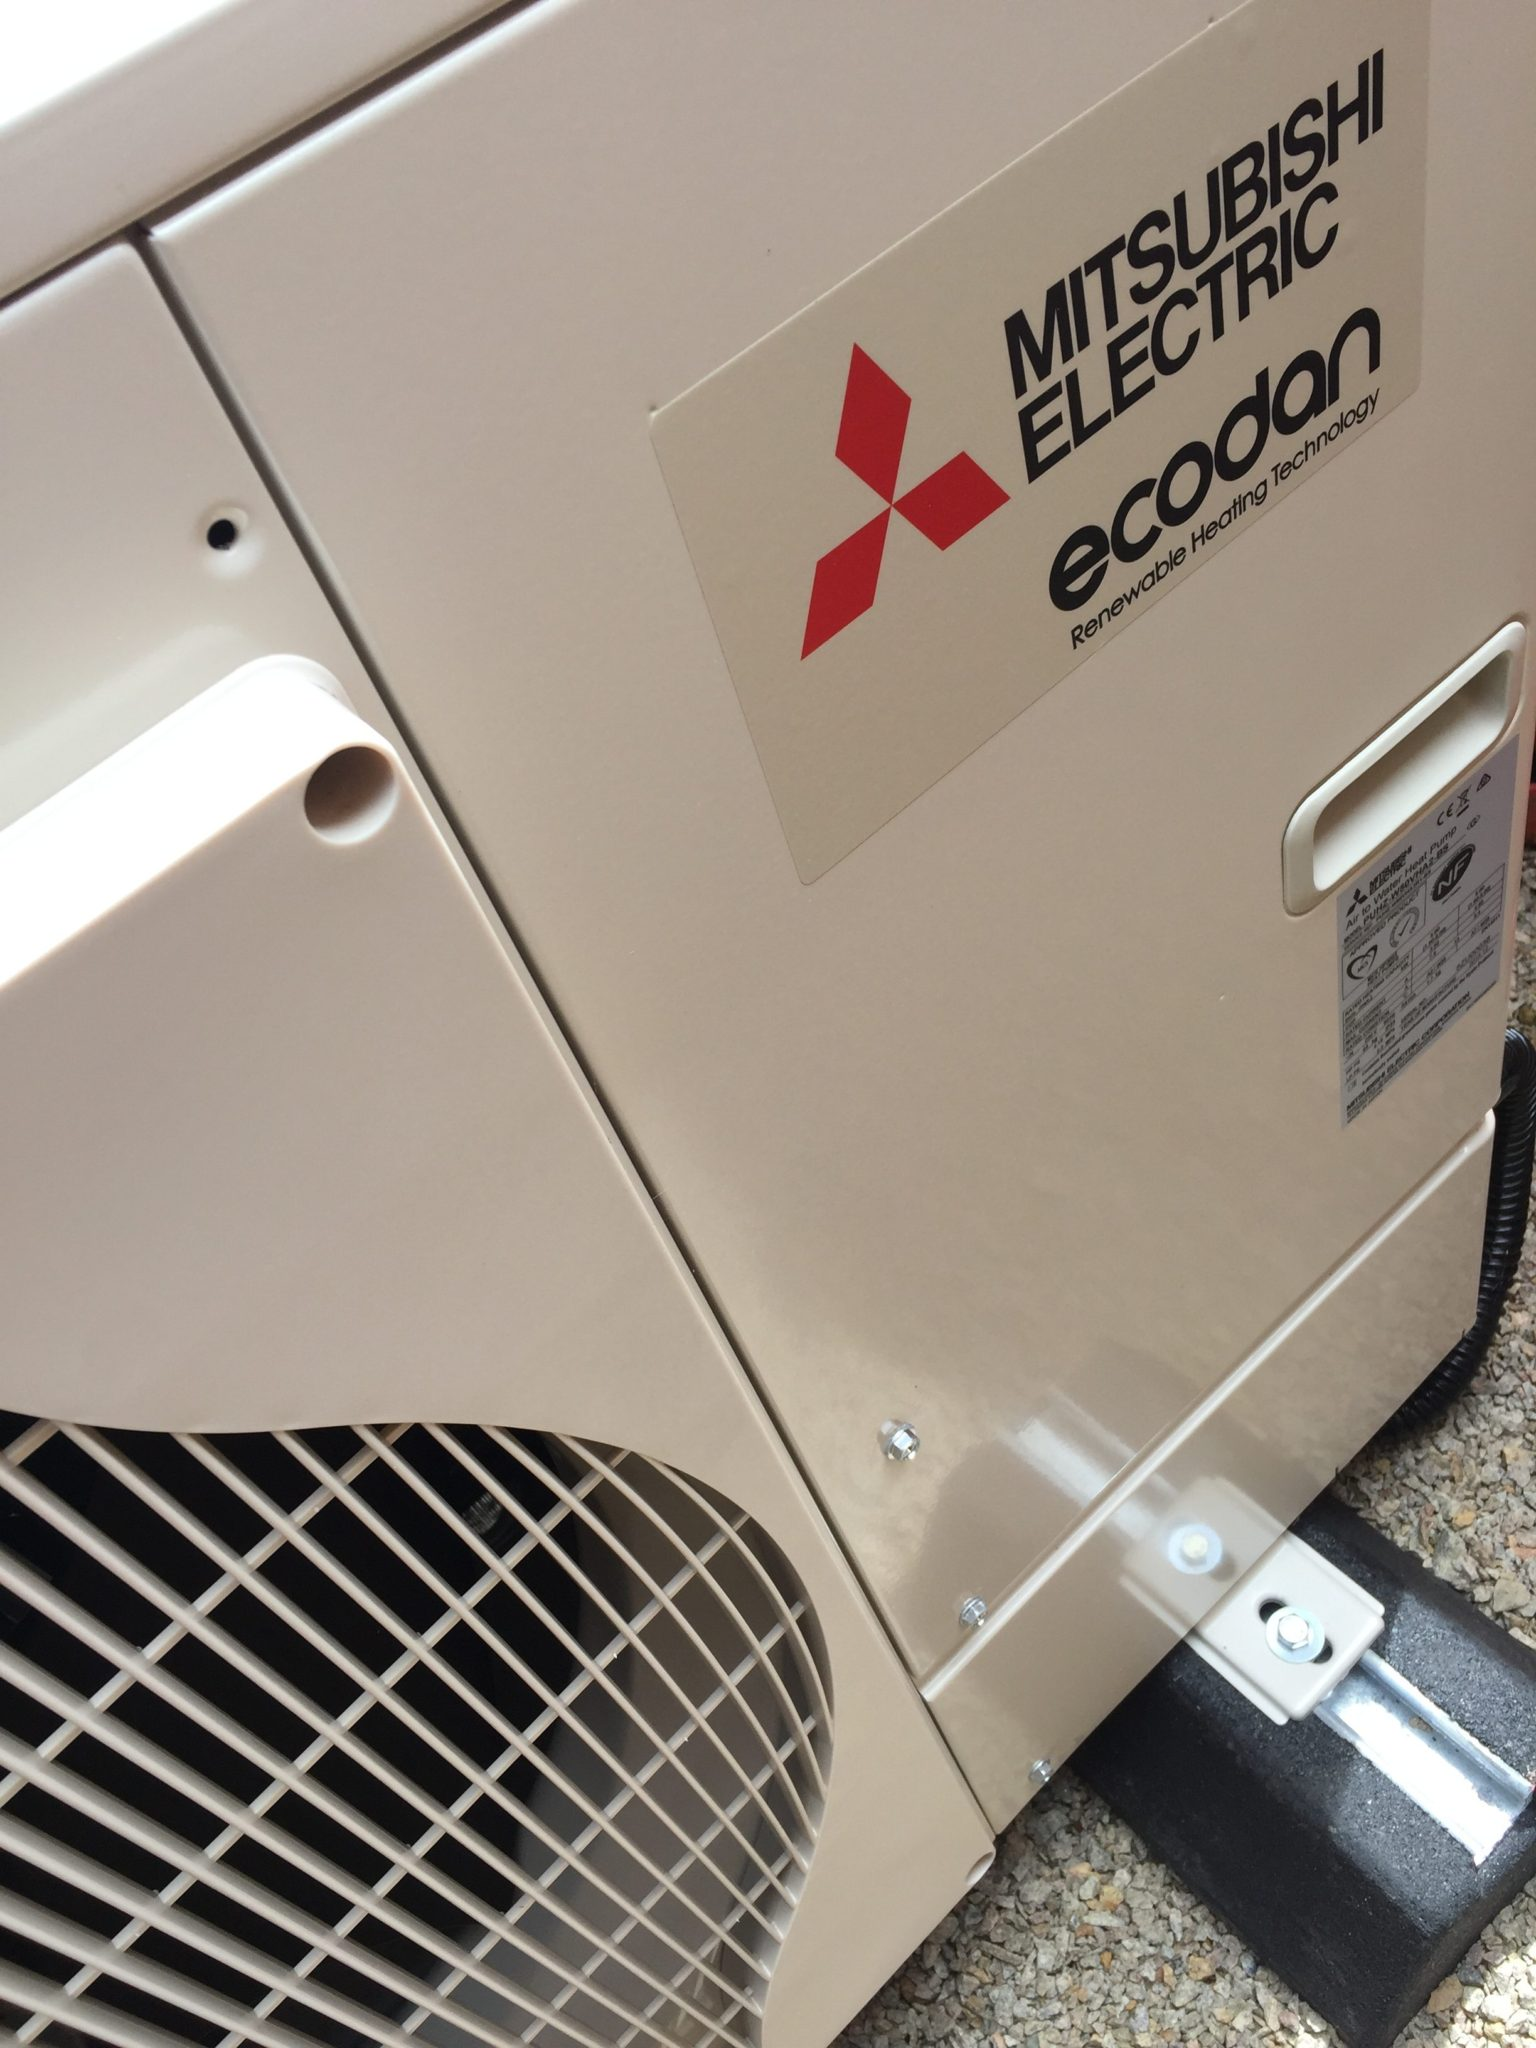 Changes to the Renewable Heat Incentive could increase the potential benefits of an air source heat pump installation.